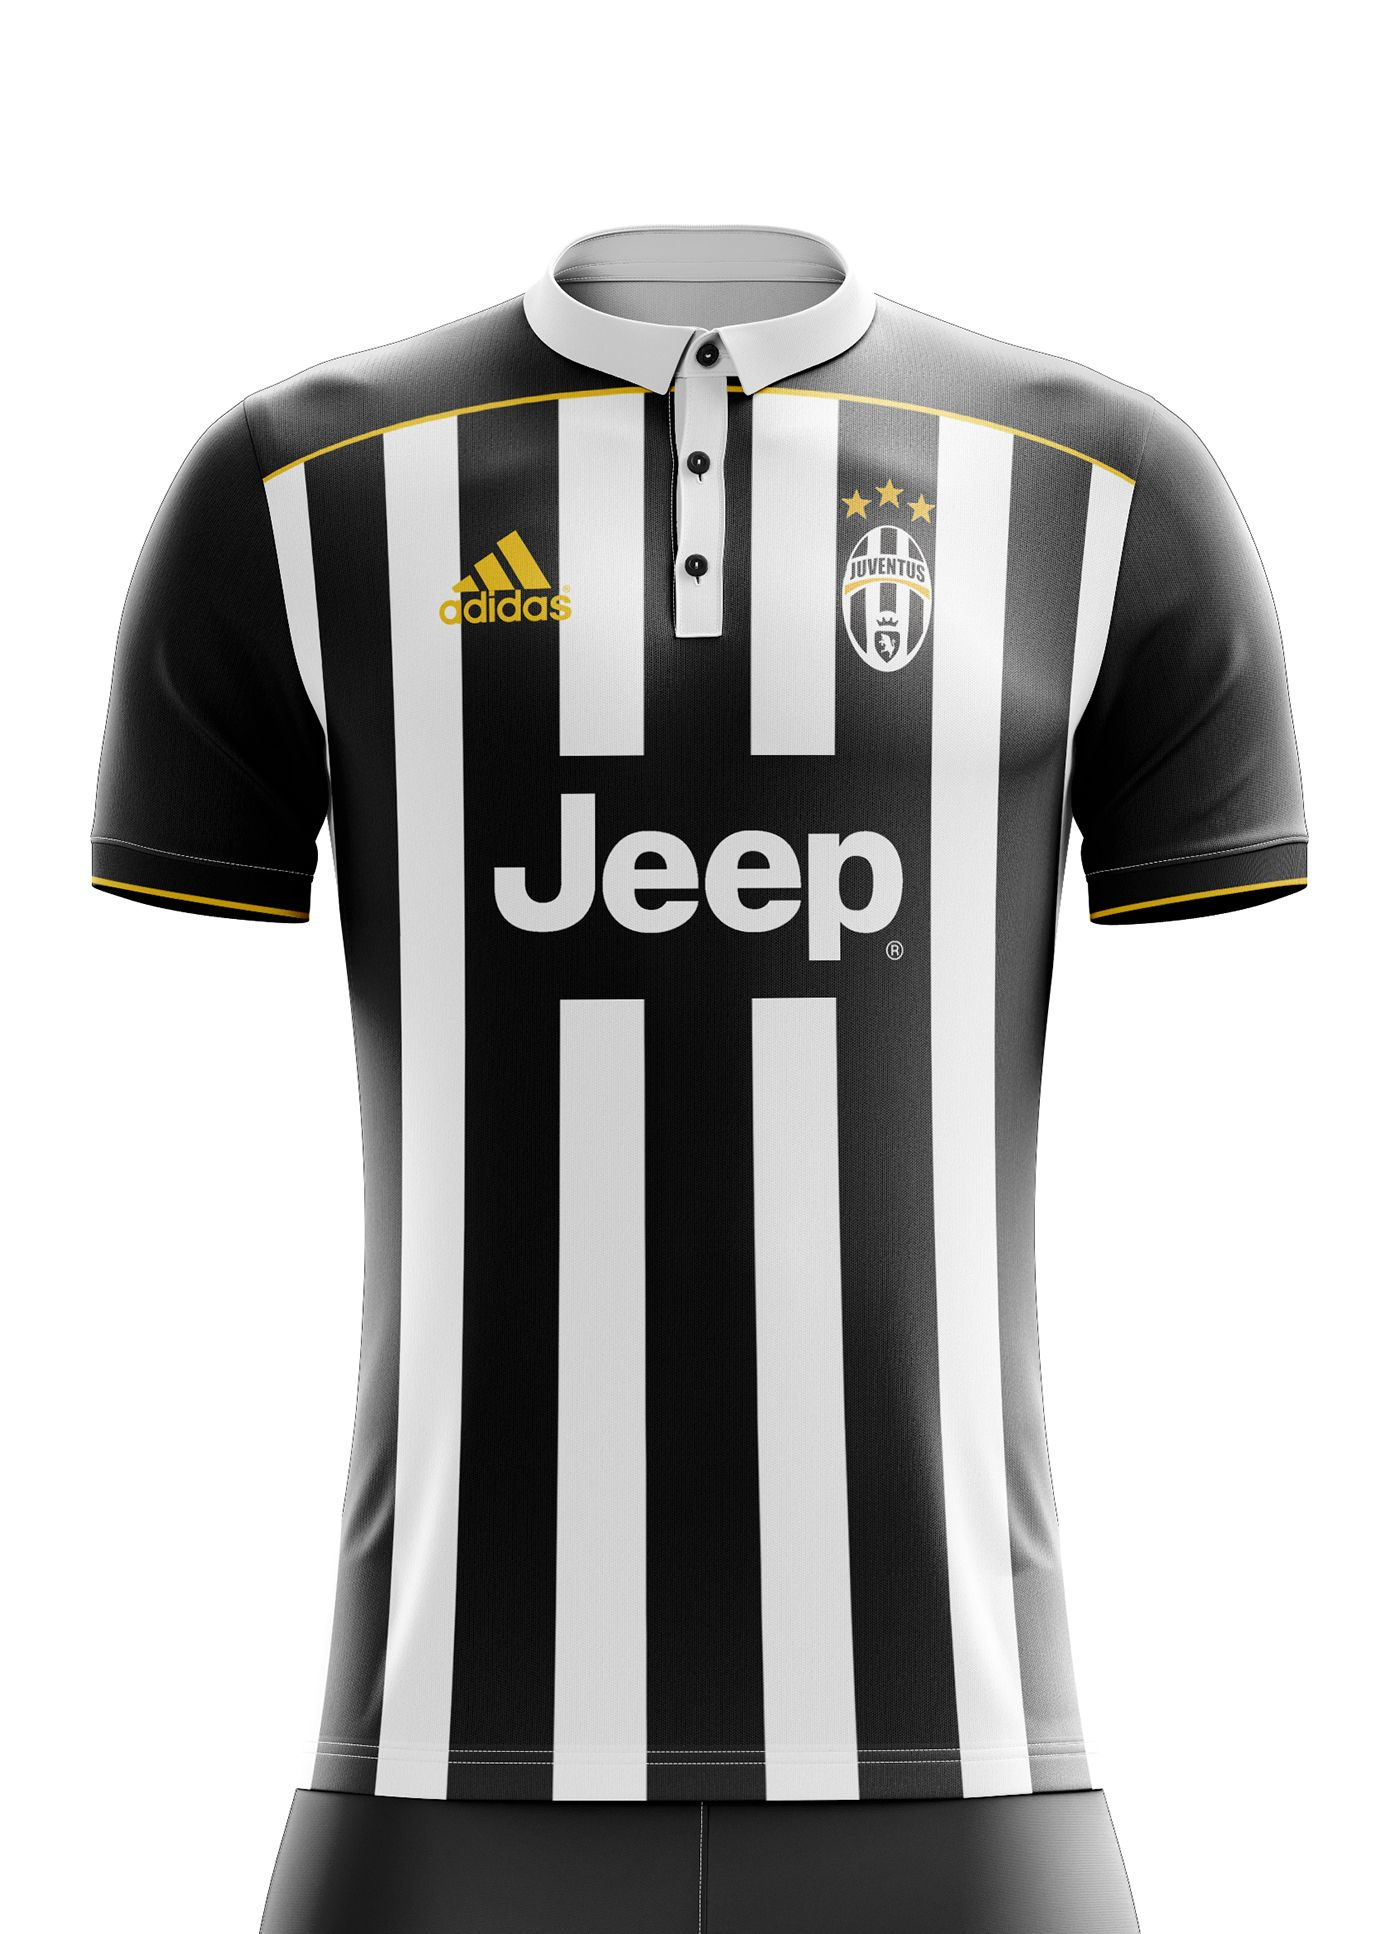 8b0276e5340 Juventus FC Football Kit 17 18. on Behance